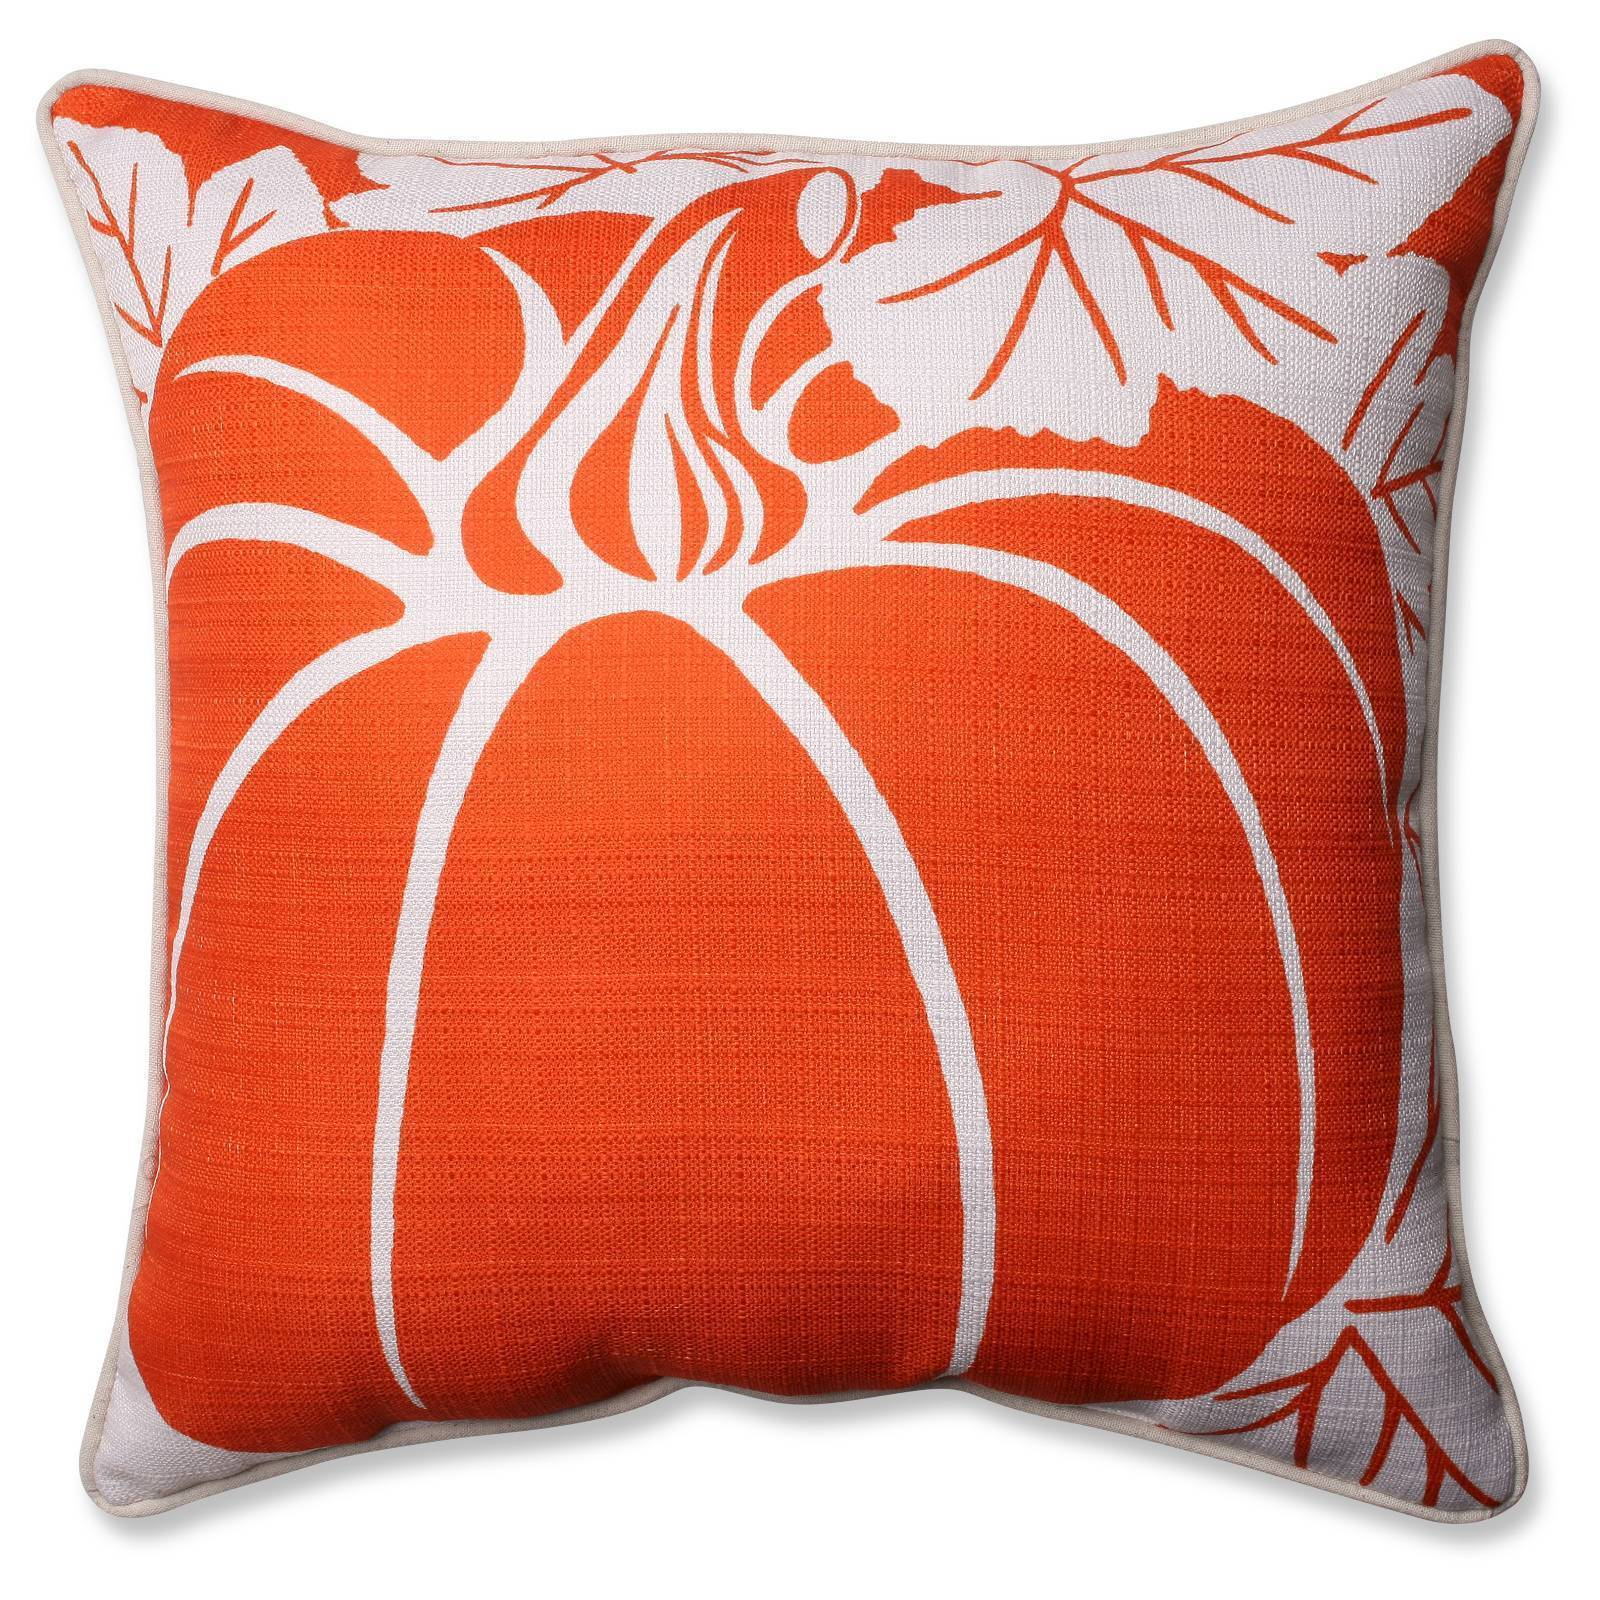 http://www.ebay.com/i/Pillow-Perfect-Pumpkin-Corded-Throw-Pillow-Orange-18-5-x11-5-/301958057494